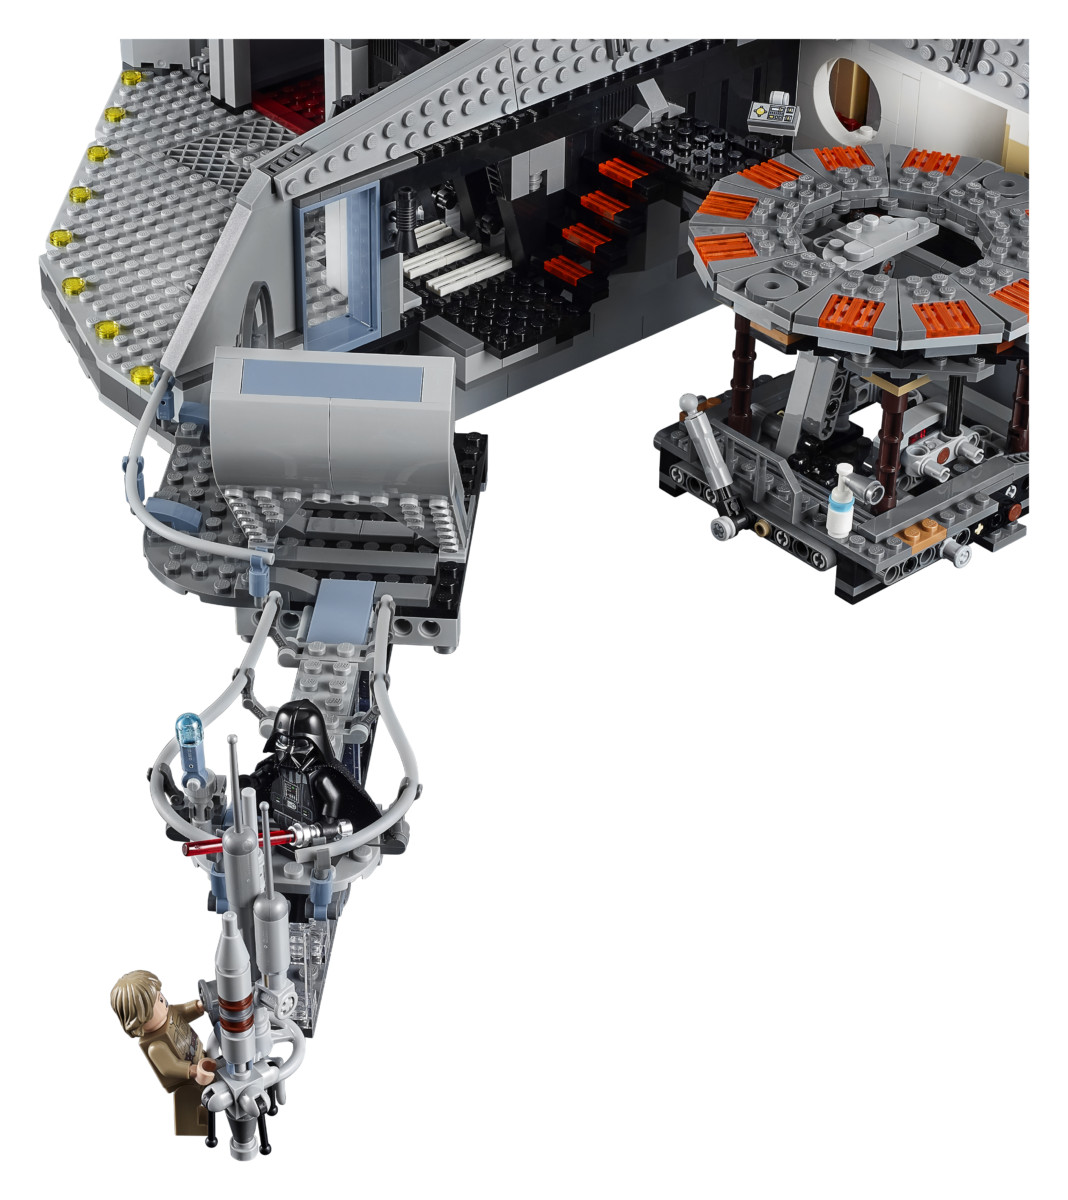 75222 back 06 - LEGO's Star Wars Betrayal at Cloud City is a brilliant recreation of the Empire Strikes Back